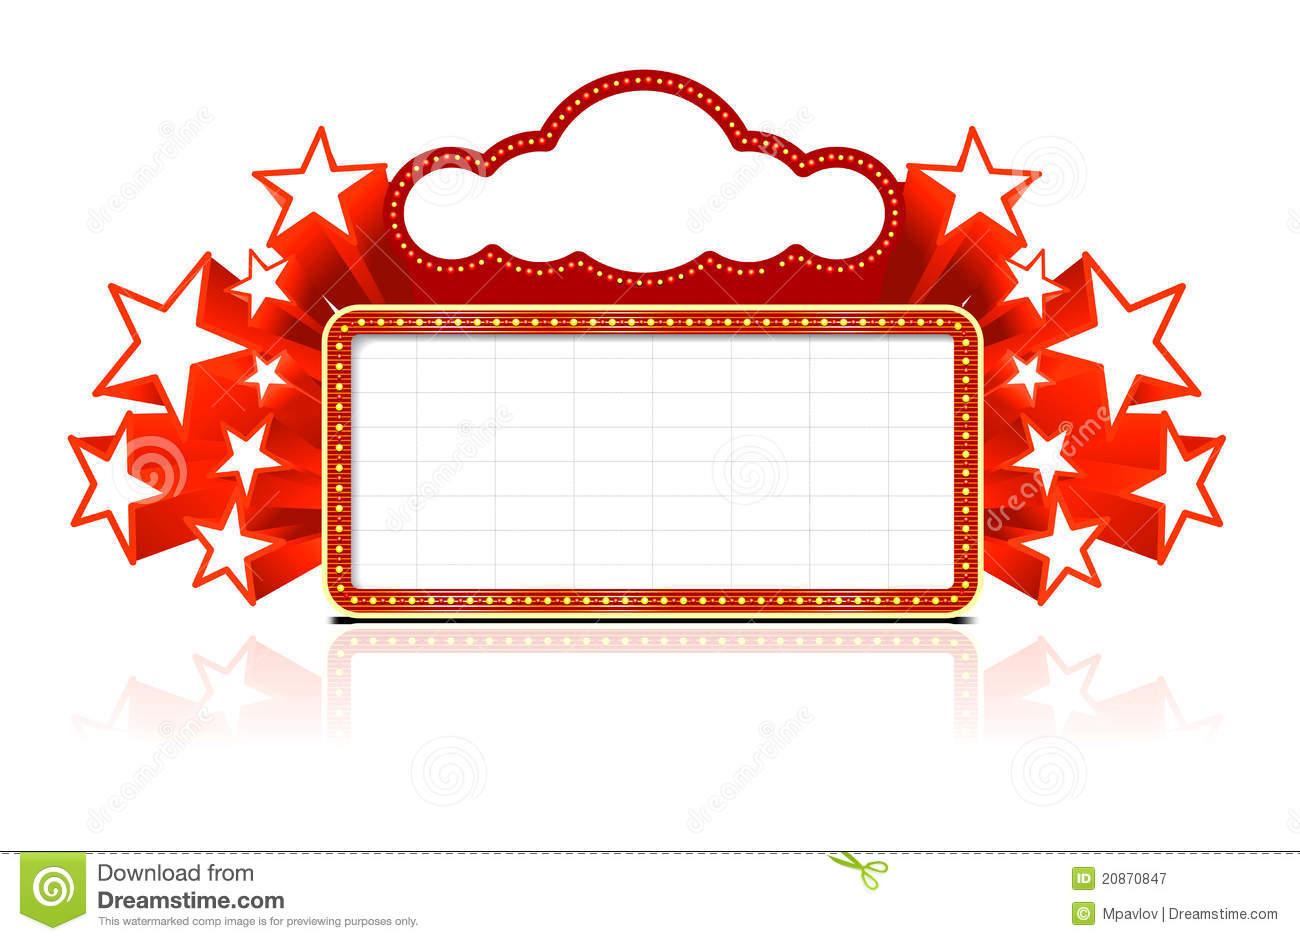 Free movie marquee clipart black and white. Look at clip art